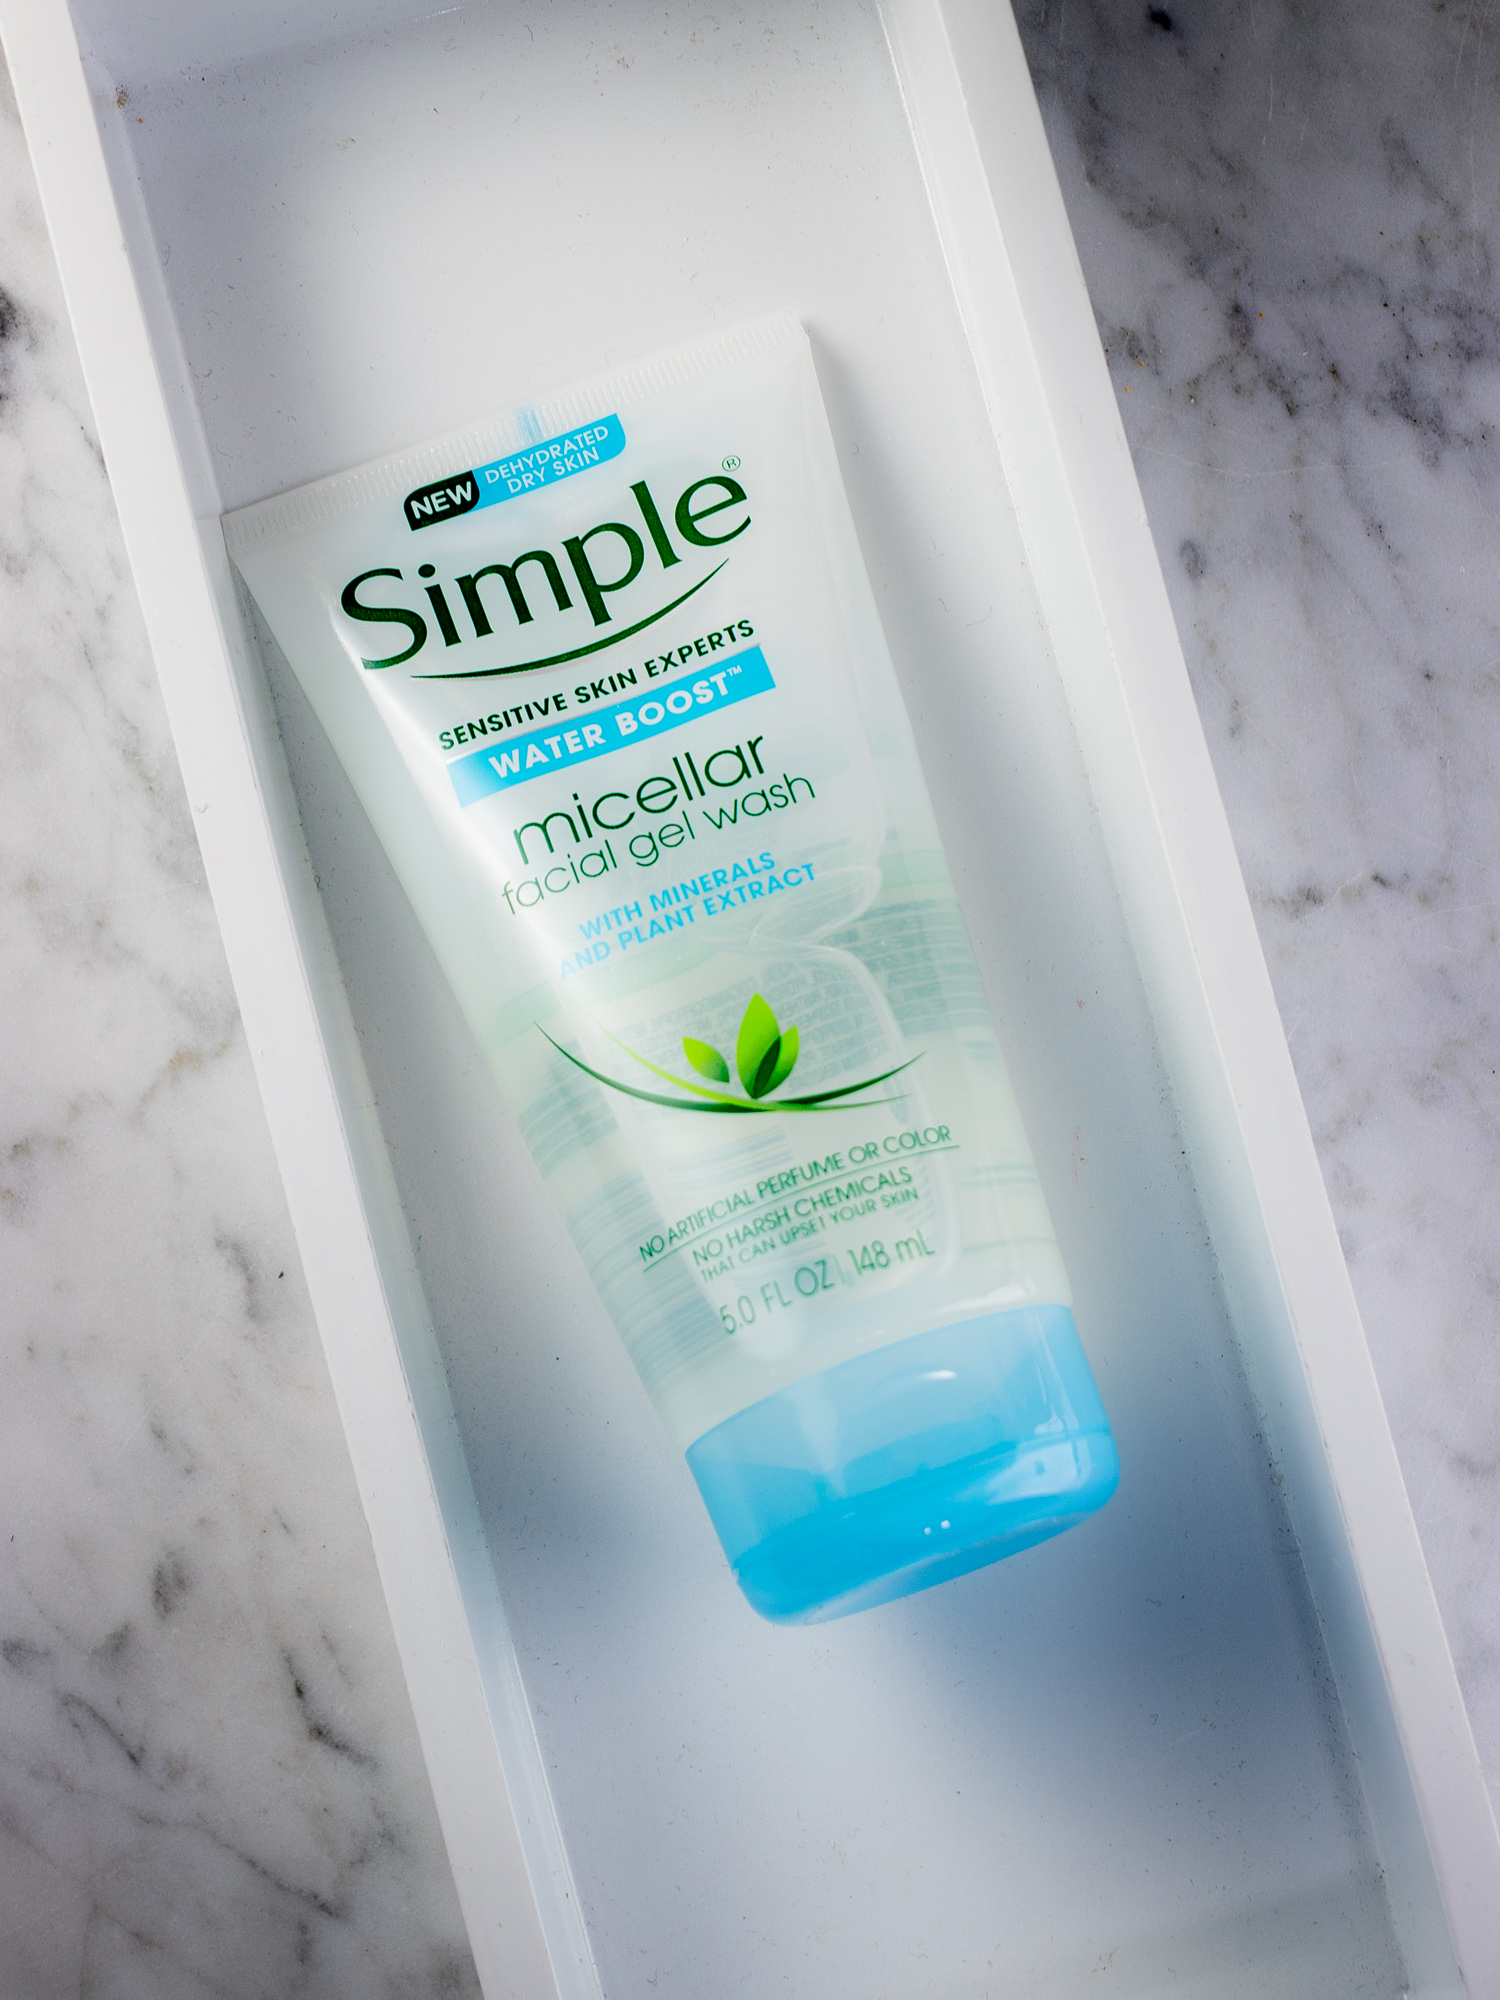 Simple Water Boost Micellar Facial Gel Wash